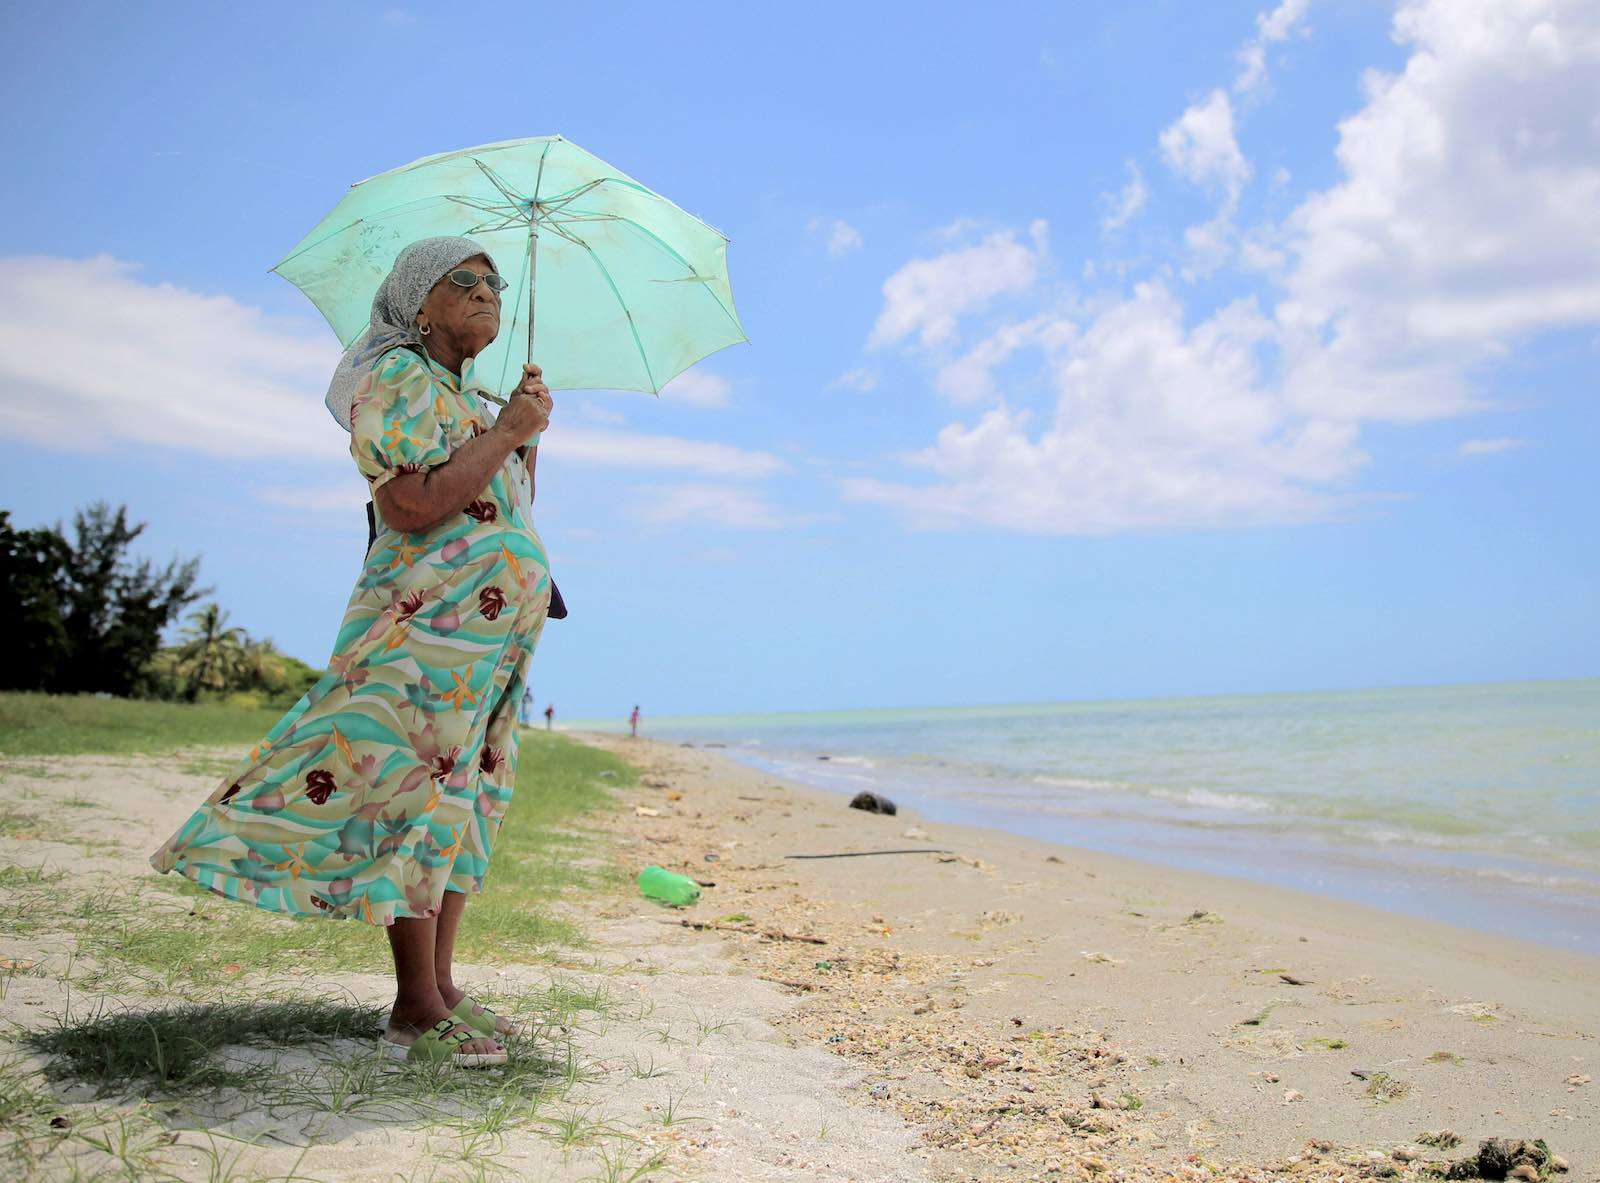 A 90-year-old woman who was exiled from the Peros Banhos Atoll of the Chagos Archipelago stands by the sea in March 2015 in Port Louis, Mauritius (The Asahi Shimbun via Getty Images)